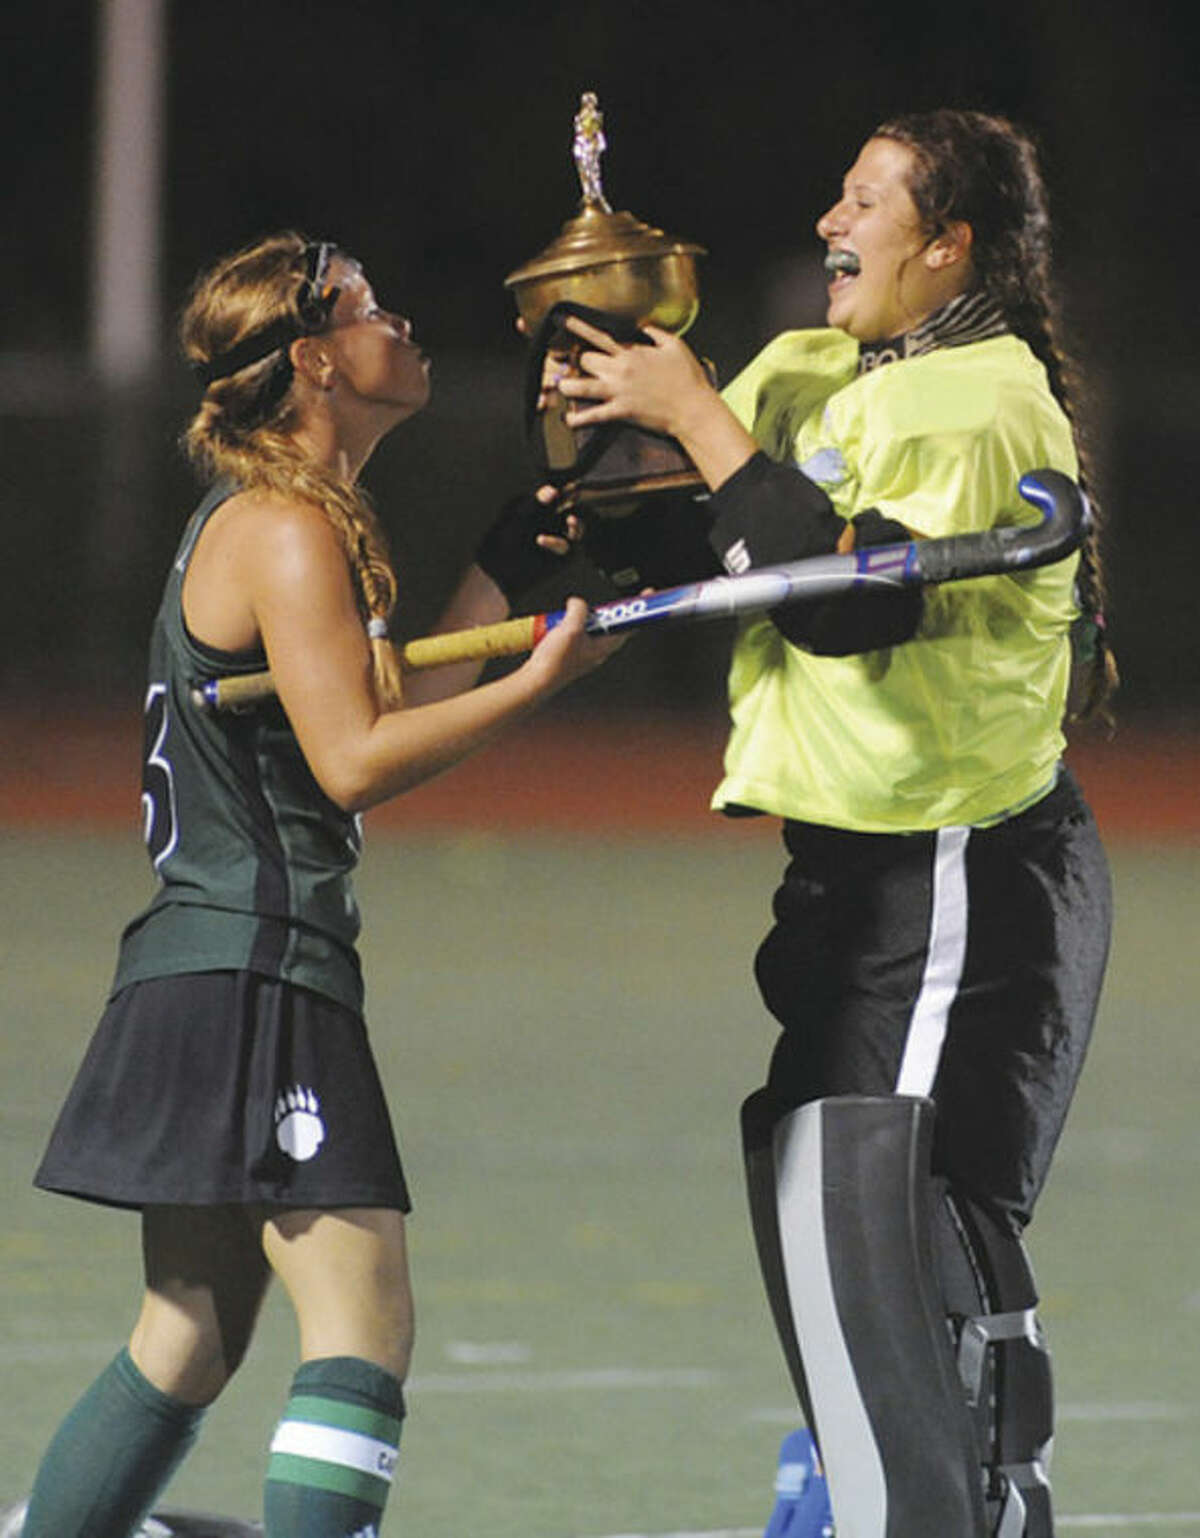 Hour photo/John Nash Norwalk's Greta McConnell, left, and Shannon O'Malley share a moment with the trophy that goes to the winner of their team's annual game with crosstown rival Brien McMahon. Norwalk won the game, 3-1, to keep the trophy for a third straight season.